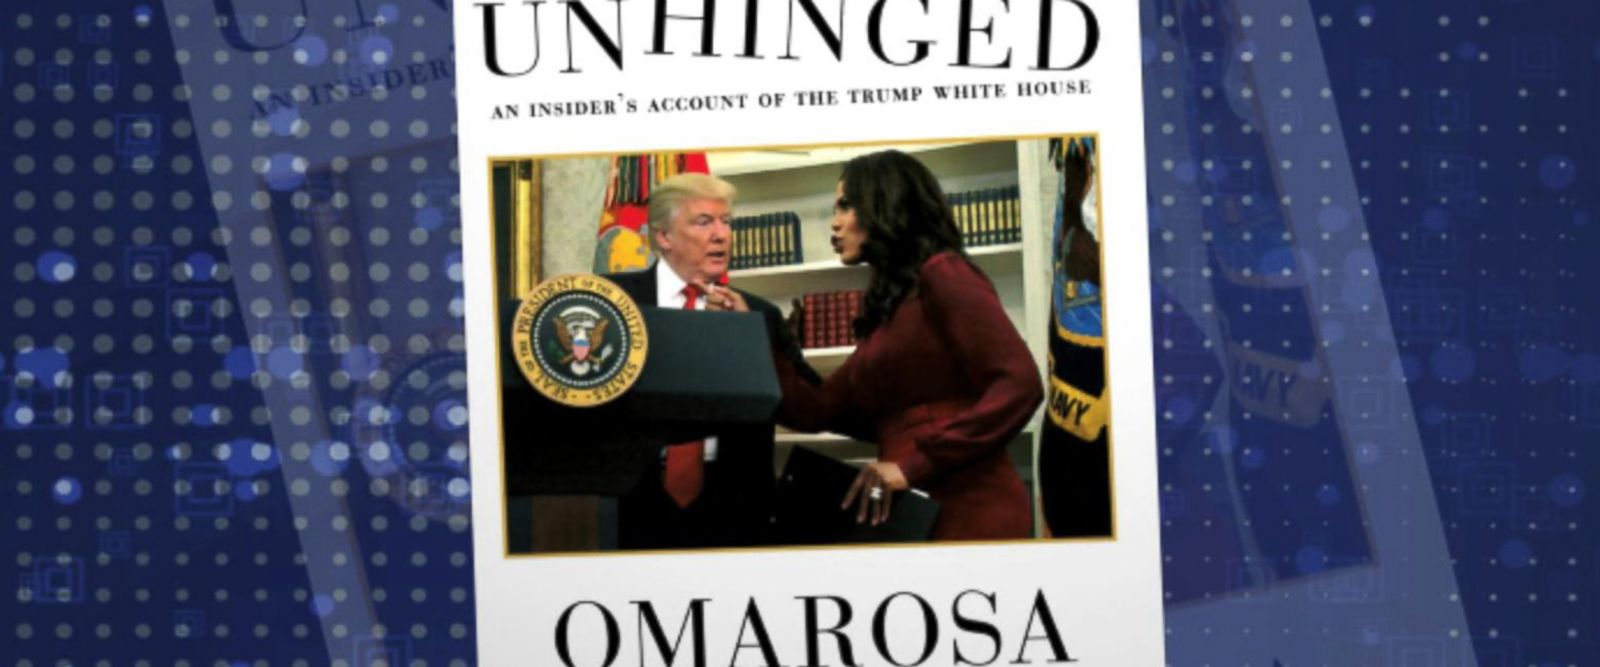 VIDEO: Omarosa says Trump trying to 'silence' her as campaign files arbitration against her